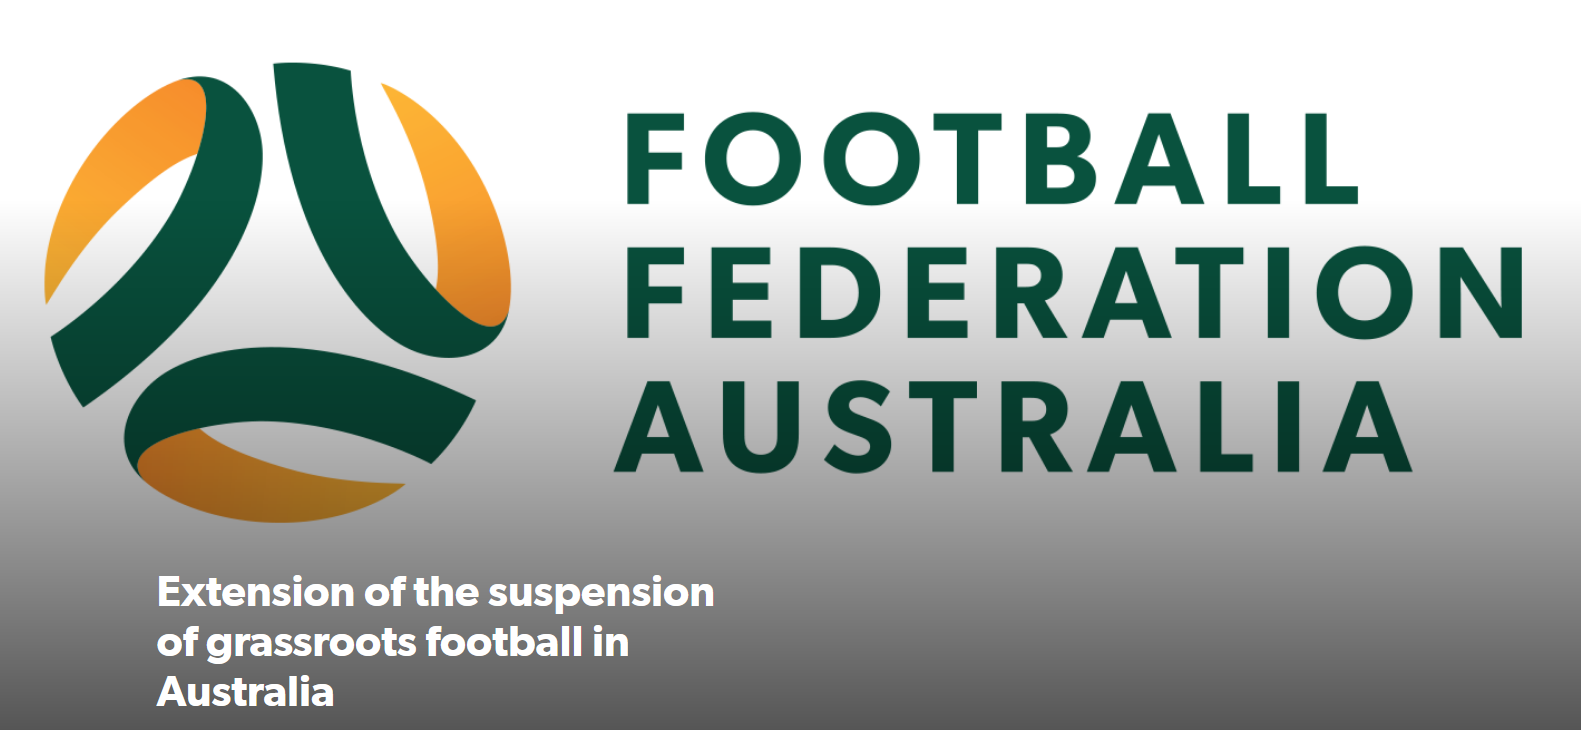 FFV Extension notice